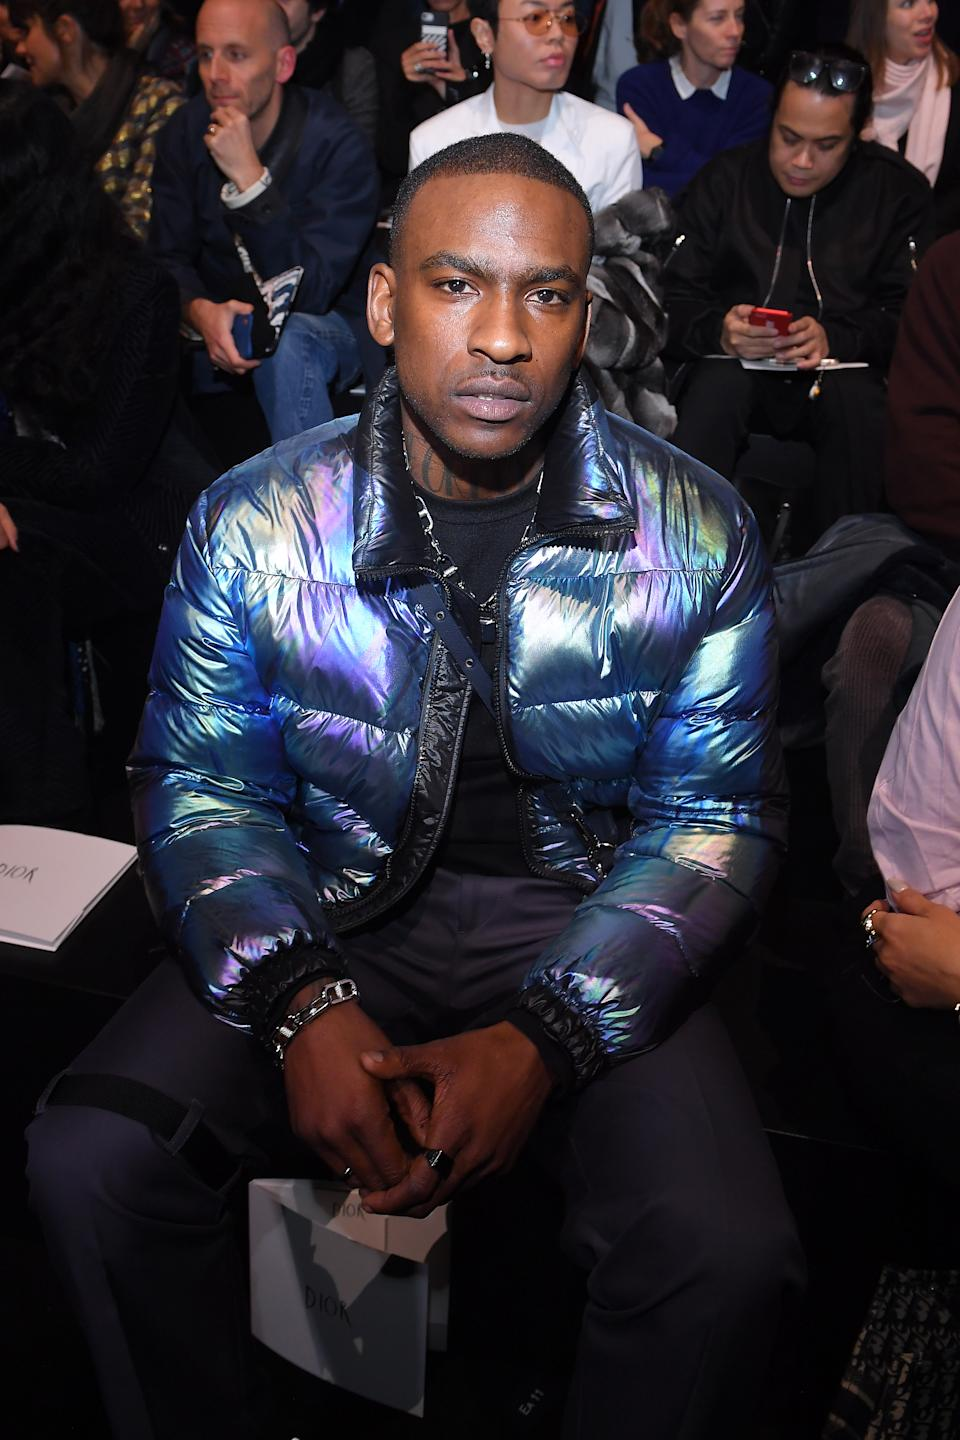 PARIS, FRANCE - JANUARY 18: Skepta attends the Dior Homme Menswear Fall/Winter 2019-2020 show as part of Paris Fashion Week on January 19, 2019 in Paris, France.  (Photo by Victor Boyko/Getty Images)